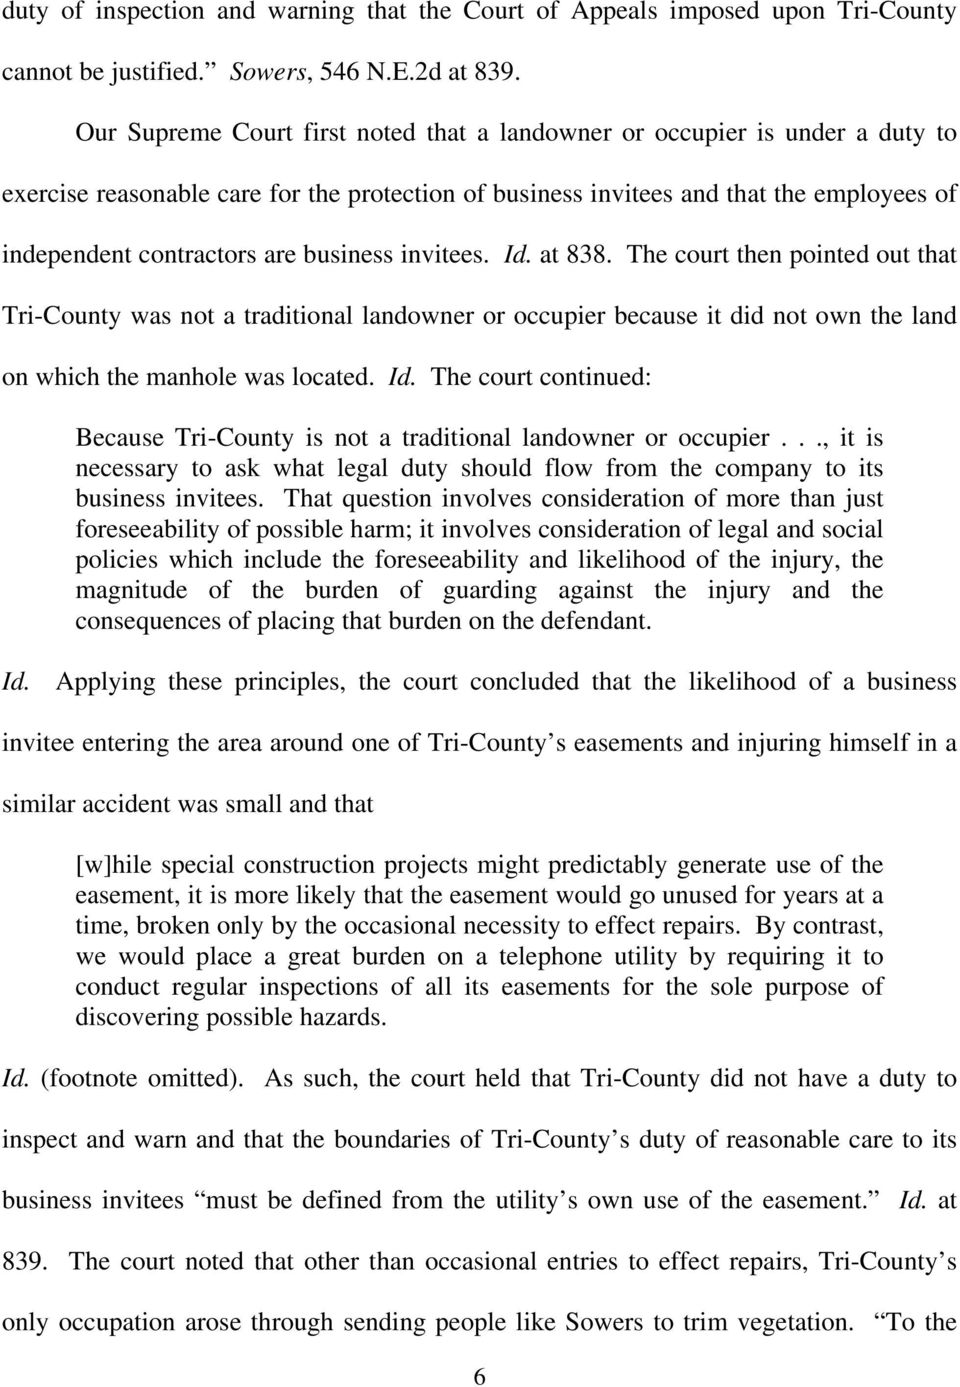 business invitees. Id. at 838. The court then pointed out that Tri-County was not a traditional landowner or occupier because it did not own the land on which the manhole was located. Id. The court continued: Because Tri-County is not a traditional landowner or occupier.